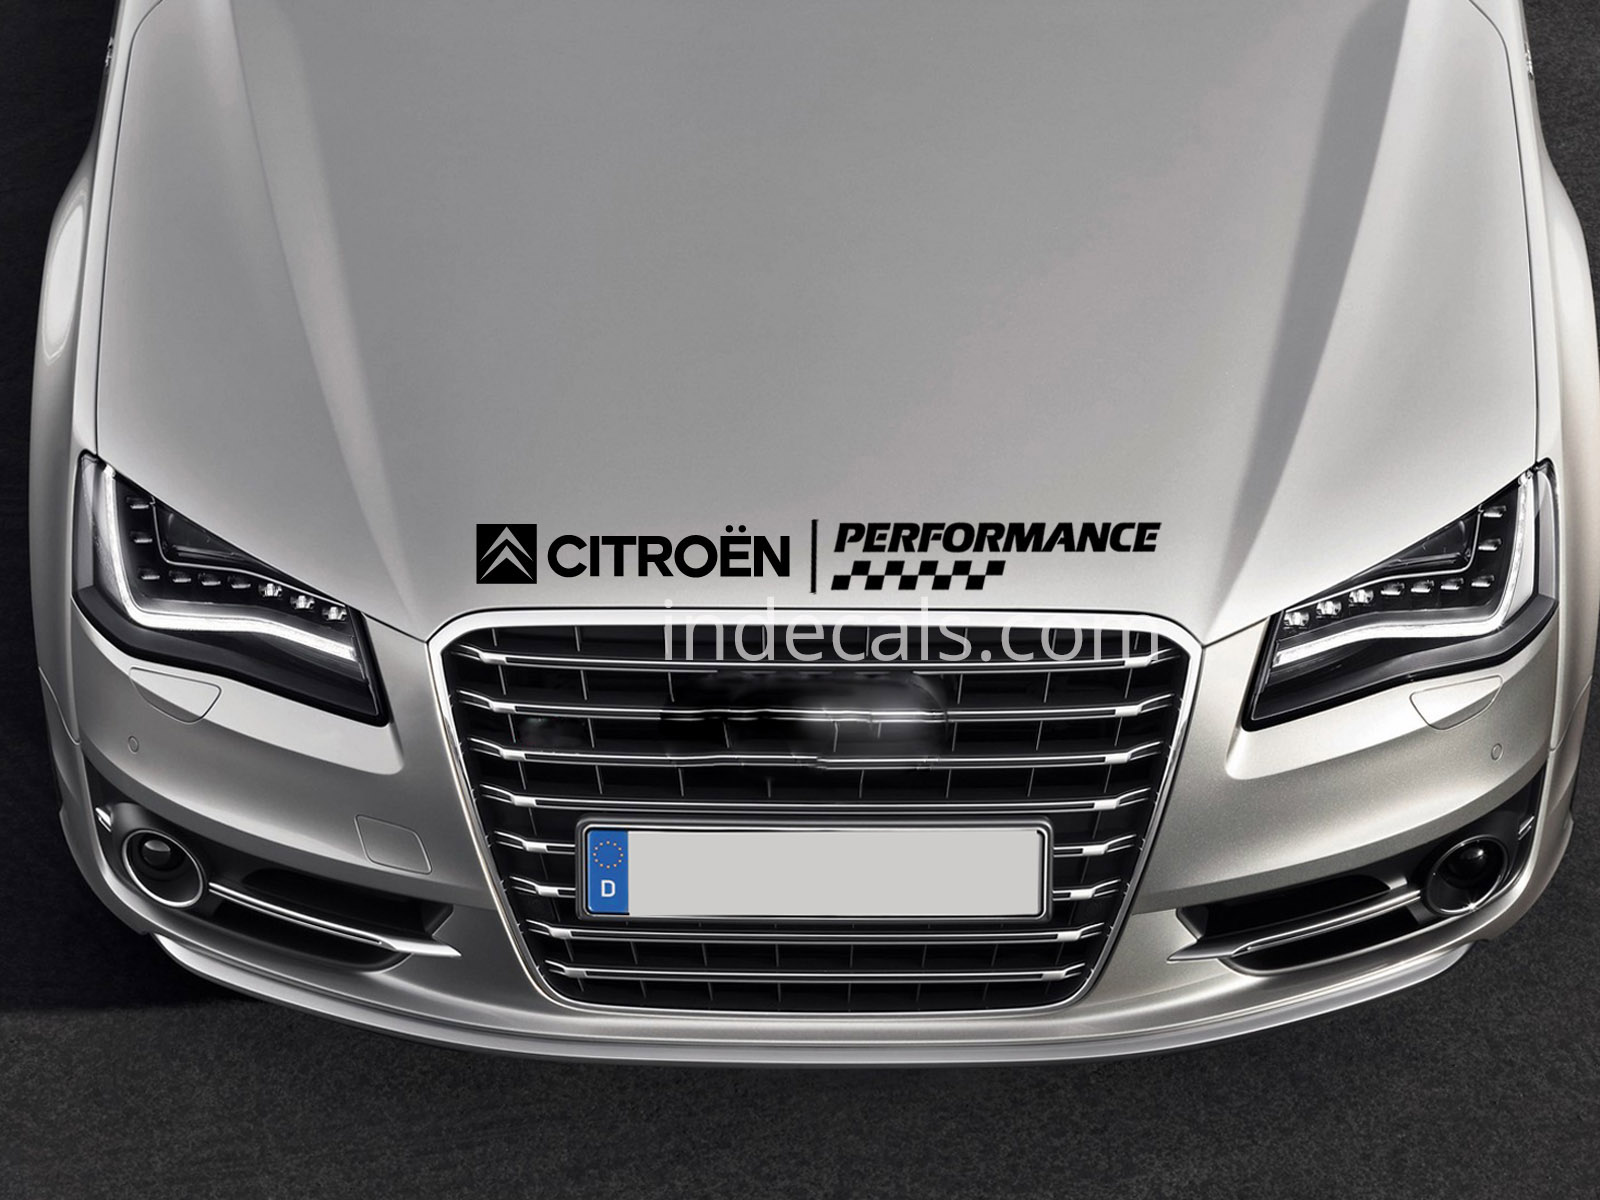 1 x Citroen Performance Sticker for Bonnet - Black